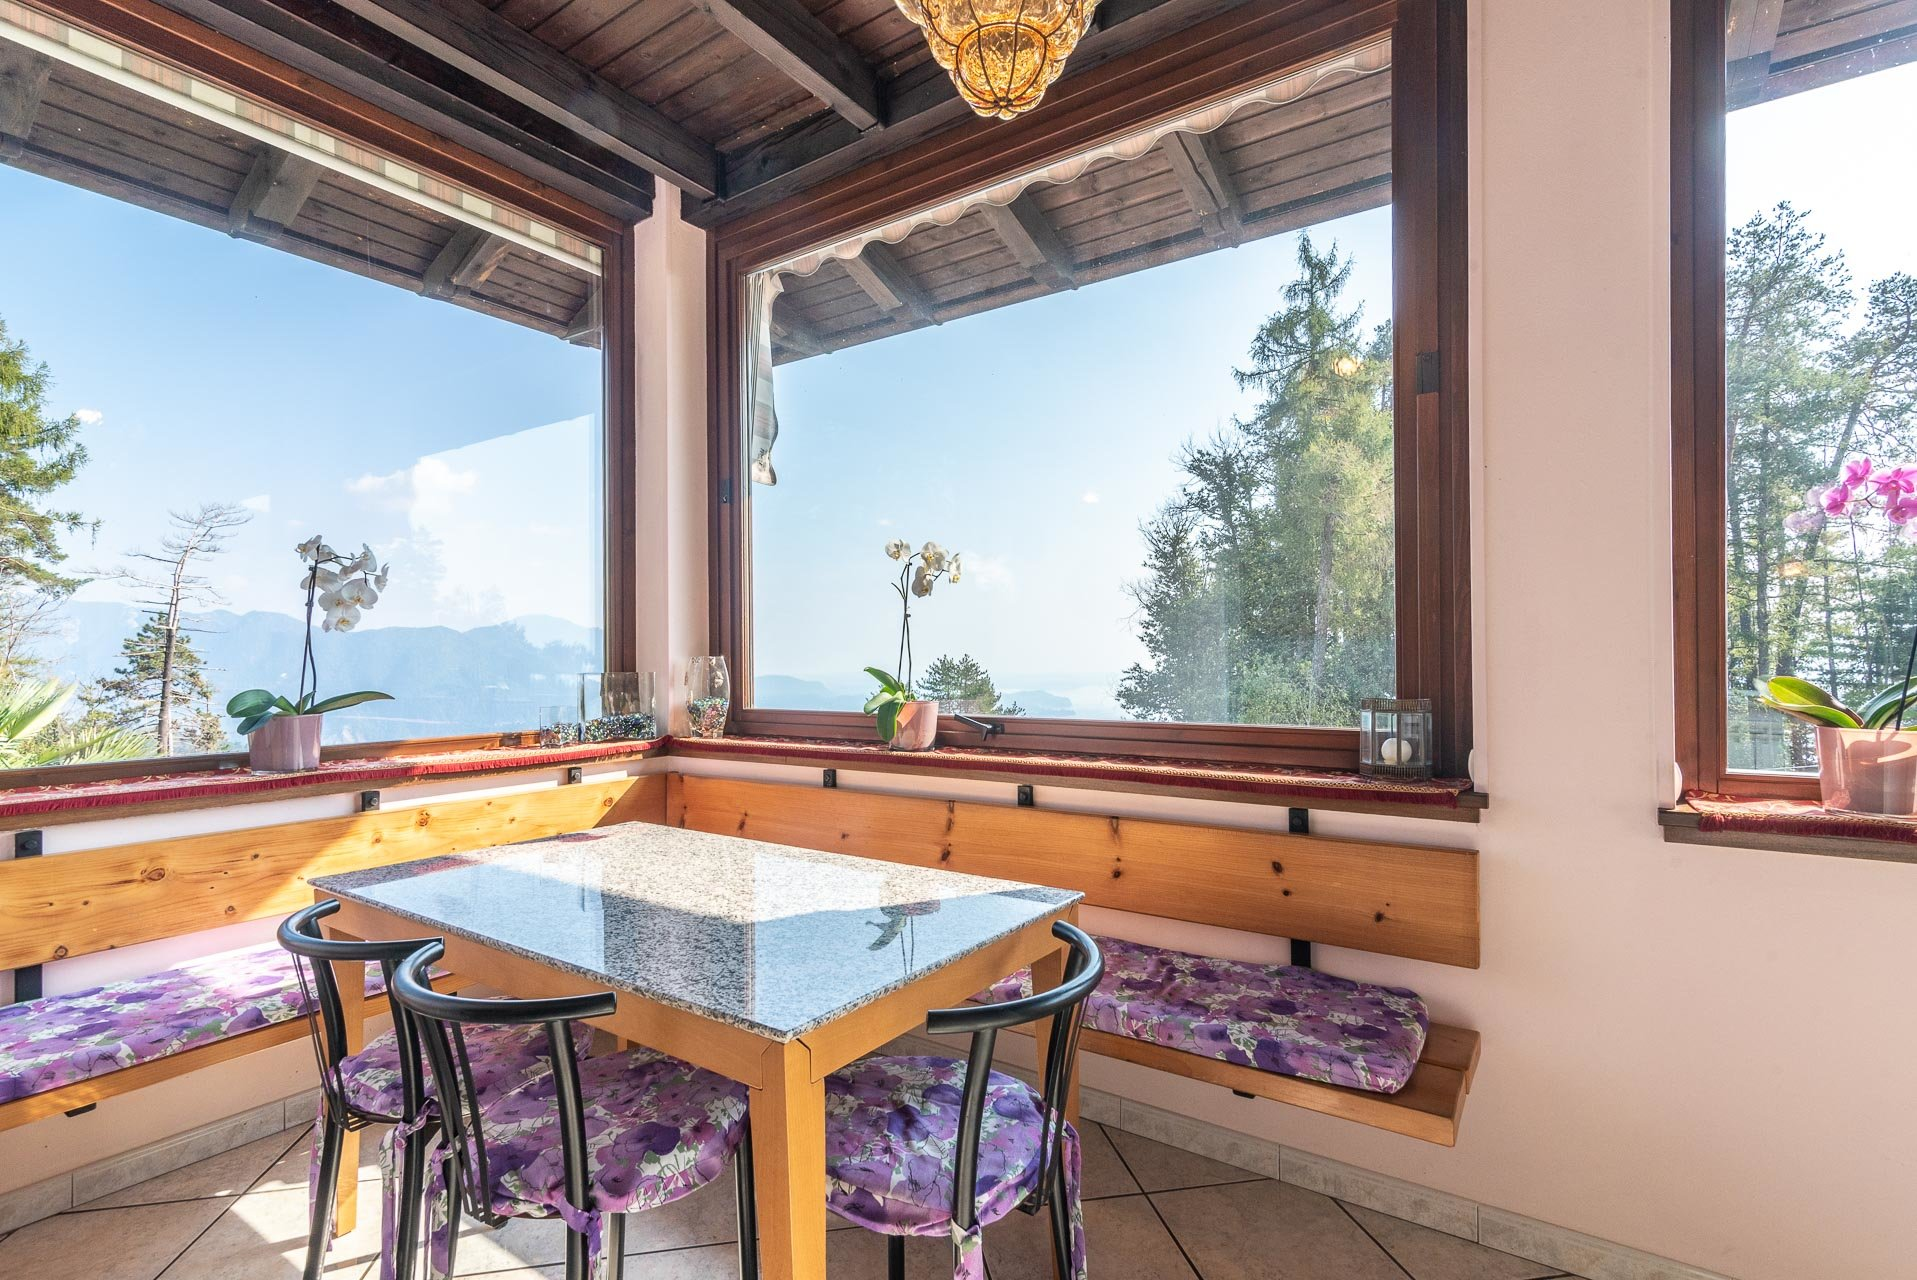 Villa for sale in Bee, with wonderful lake view - living area